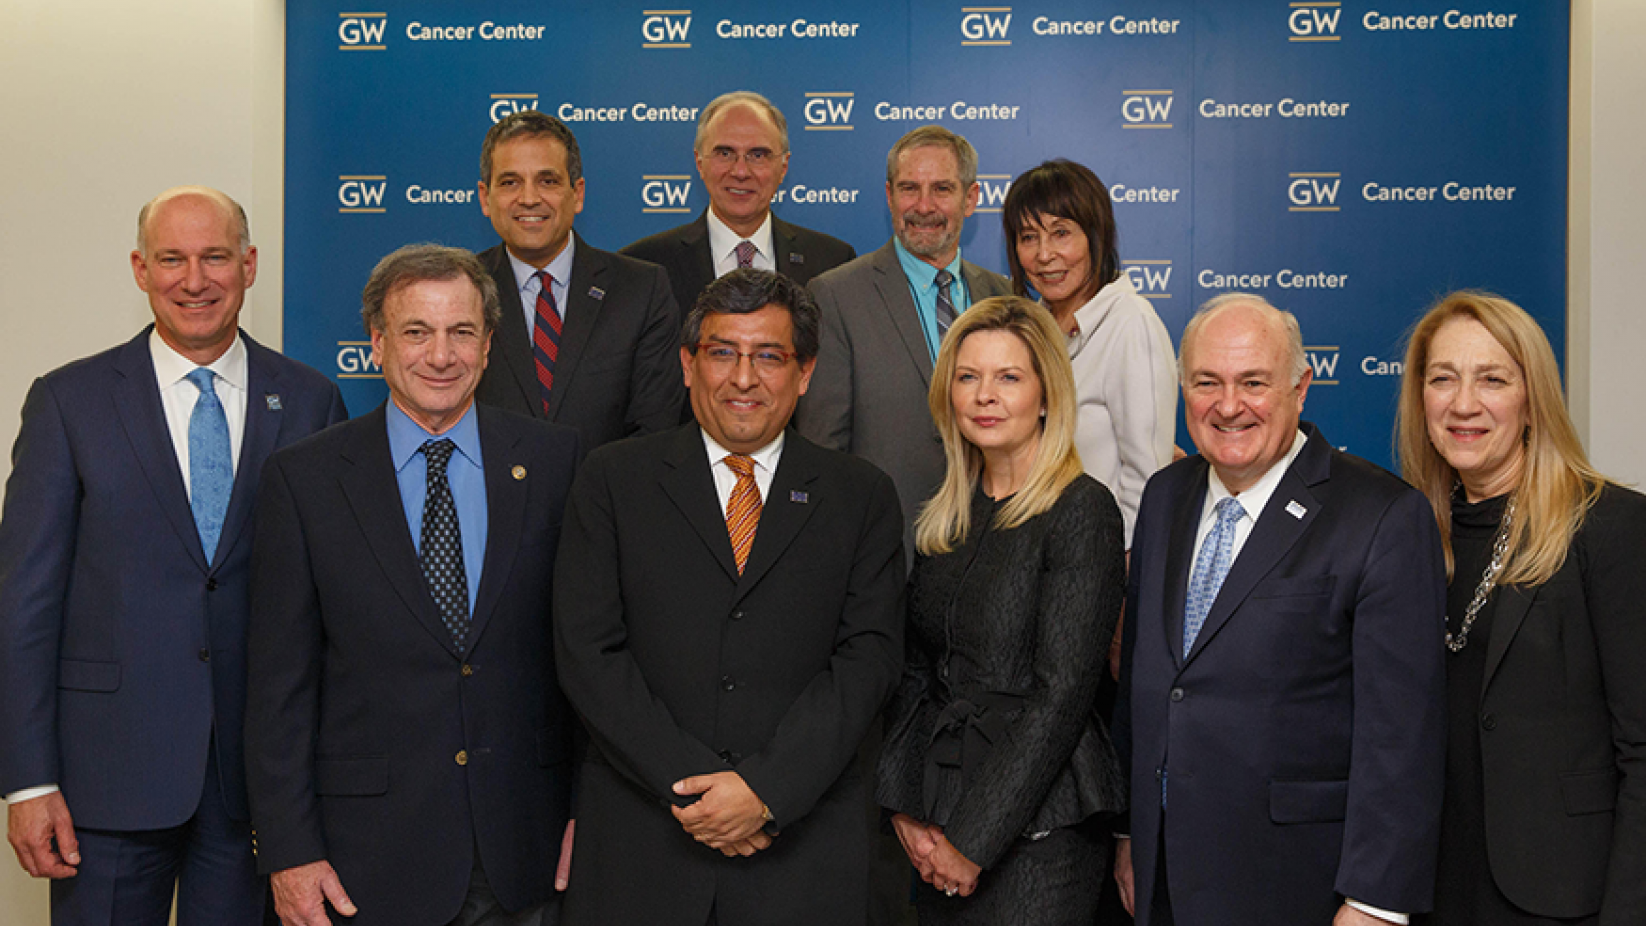 GW Cancer Center Leadership